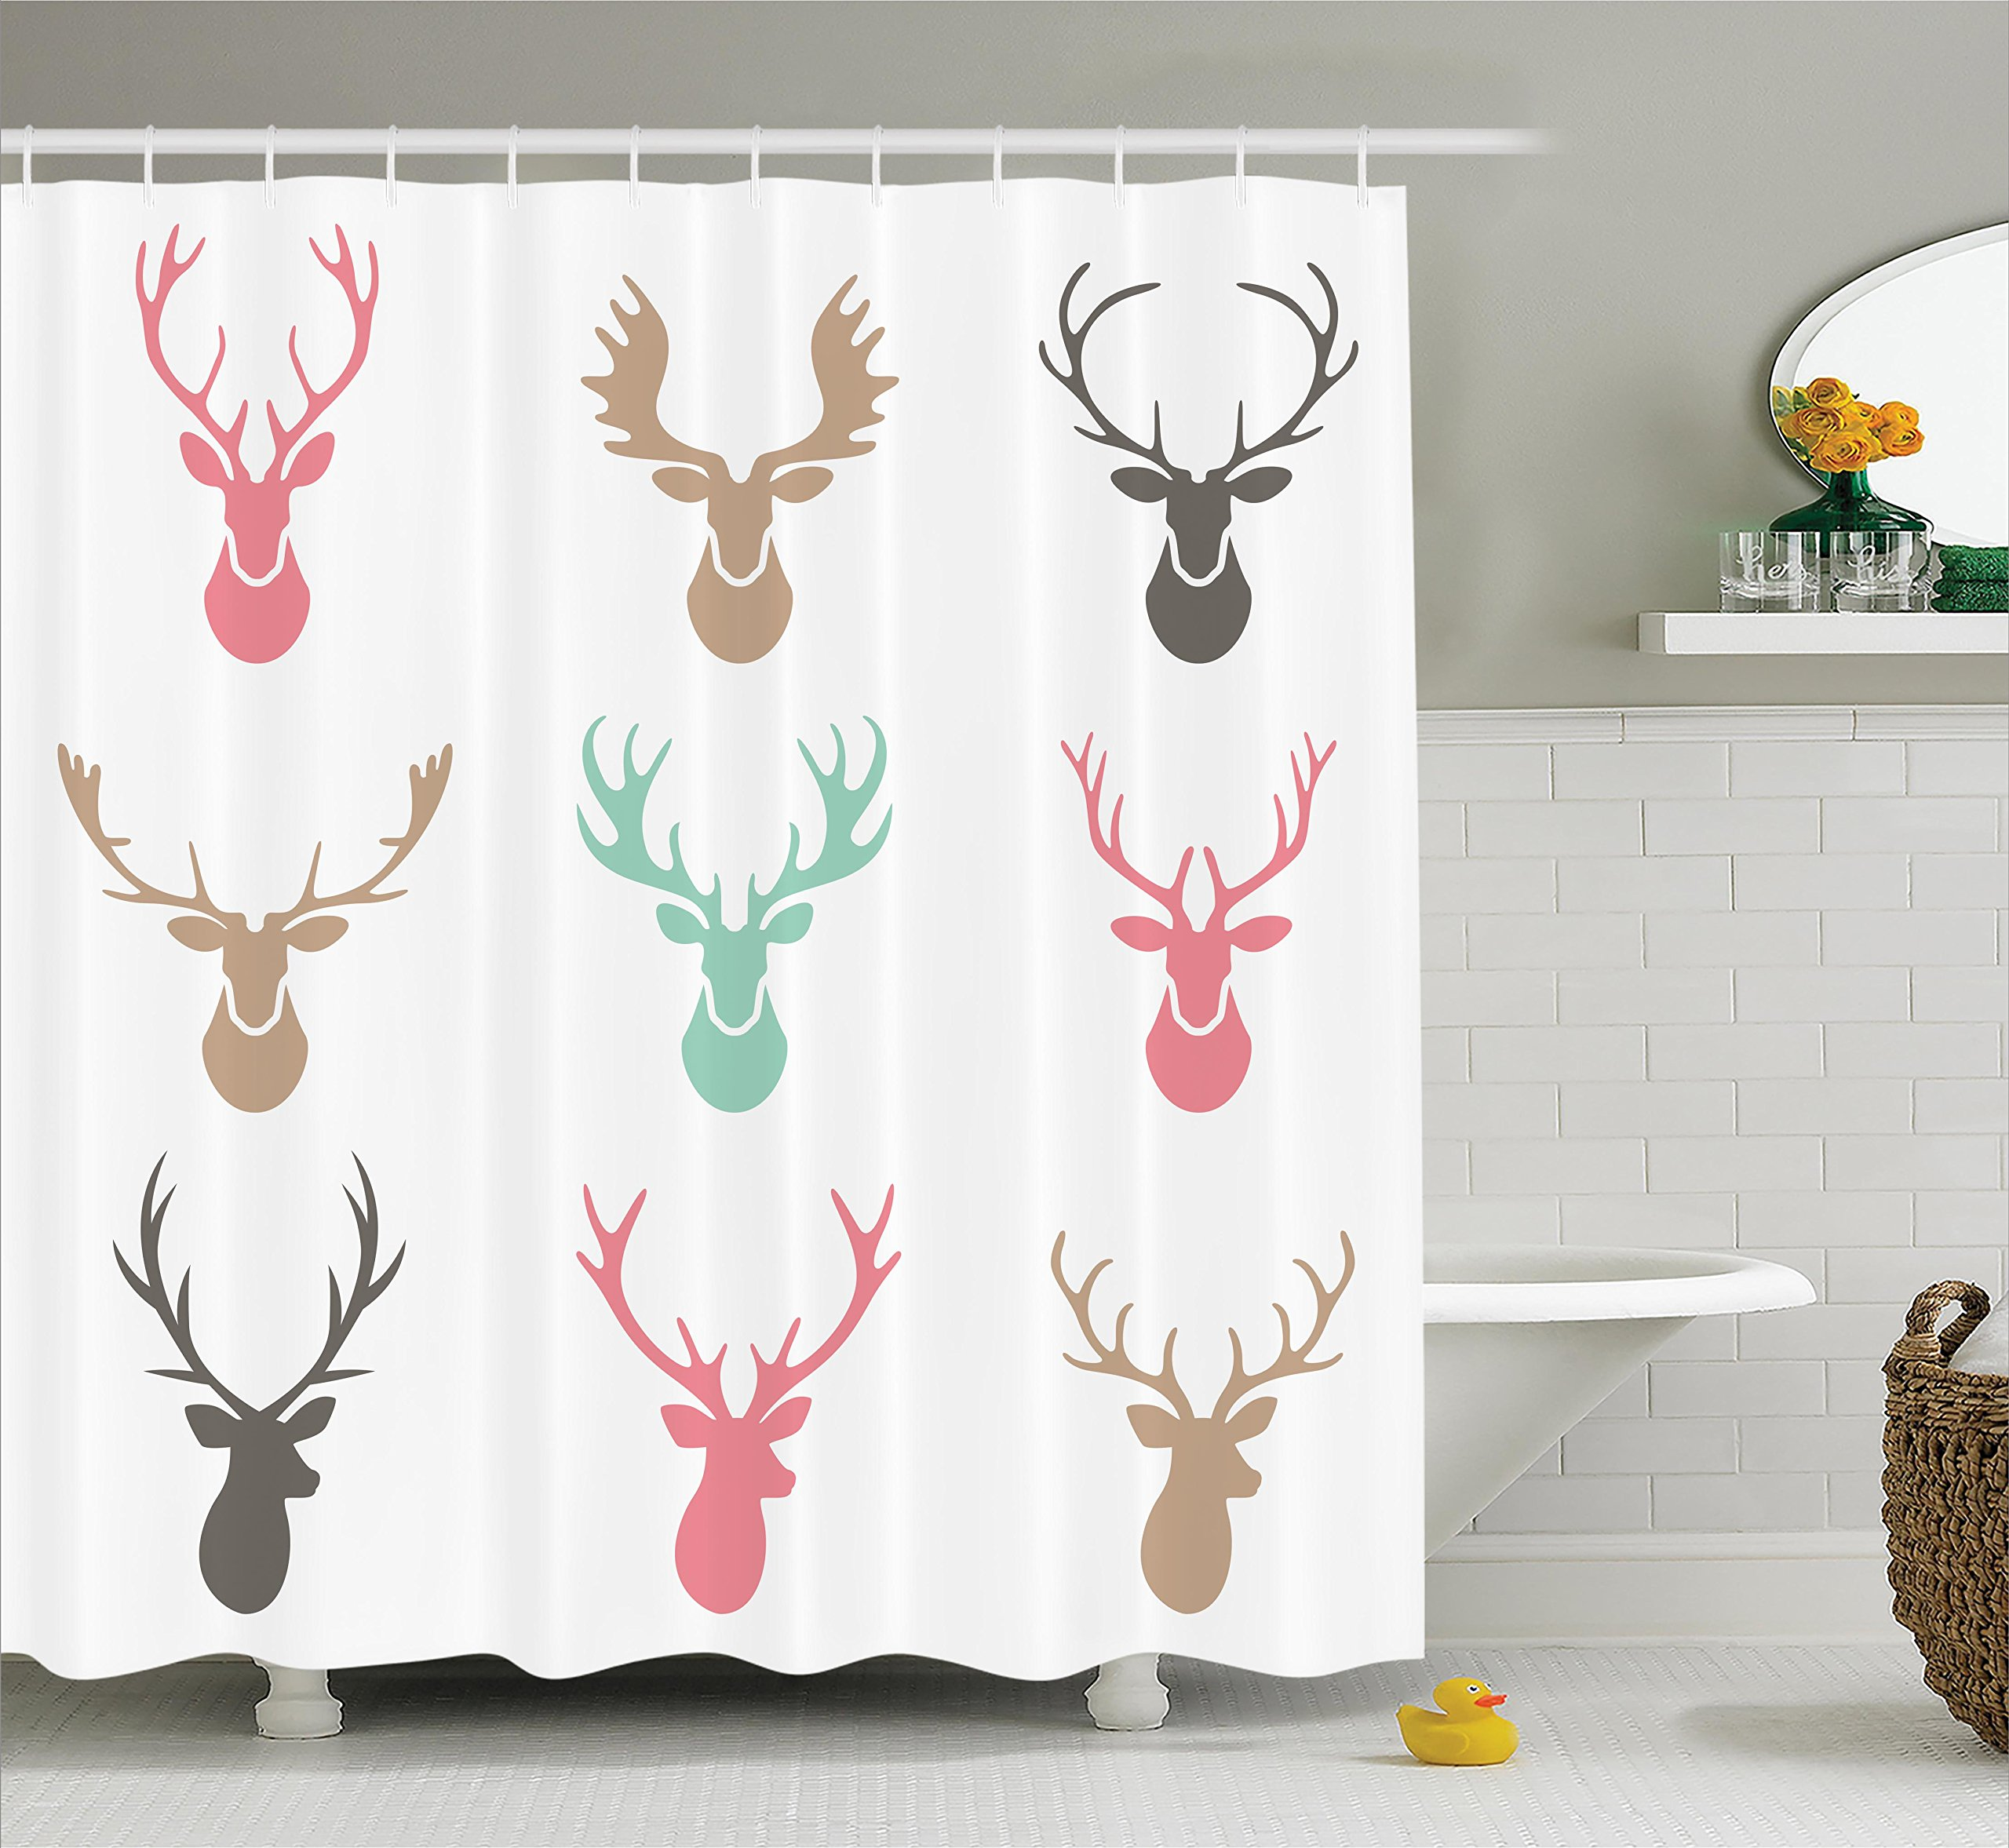 Ambesonne Antlers Decor Collection, Reindeer Antlers Illustration Hunt Countryside Jungle Nature Silhouette Art Pattern, Polyester Fabric Bathroom Shower Curtain Set with Hooks, Pink Blue Ivory